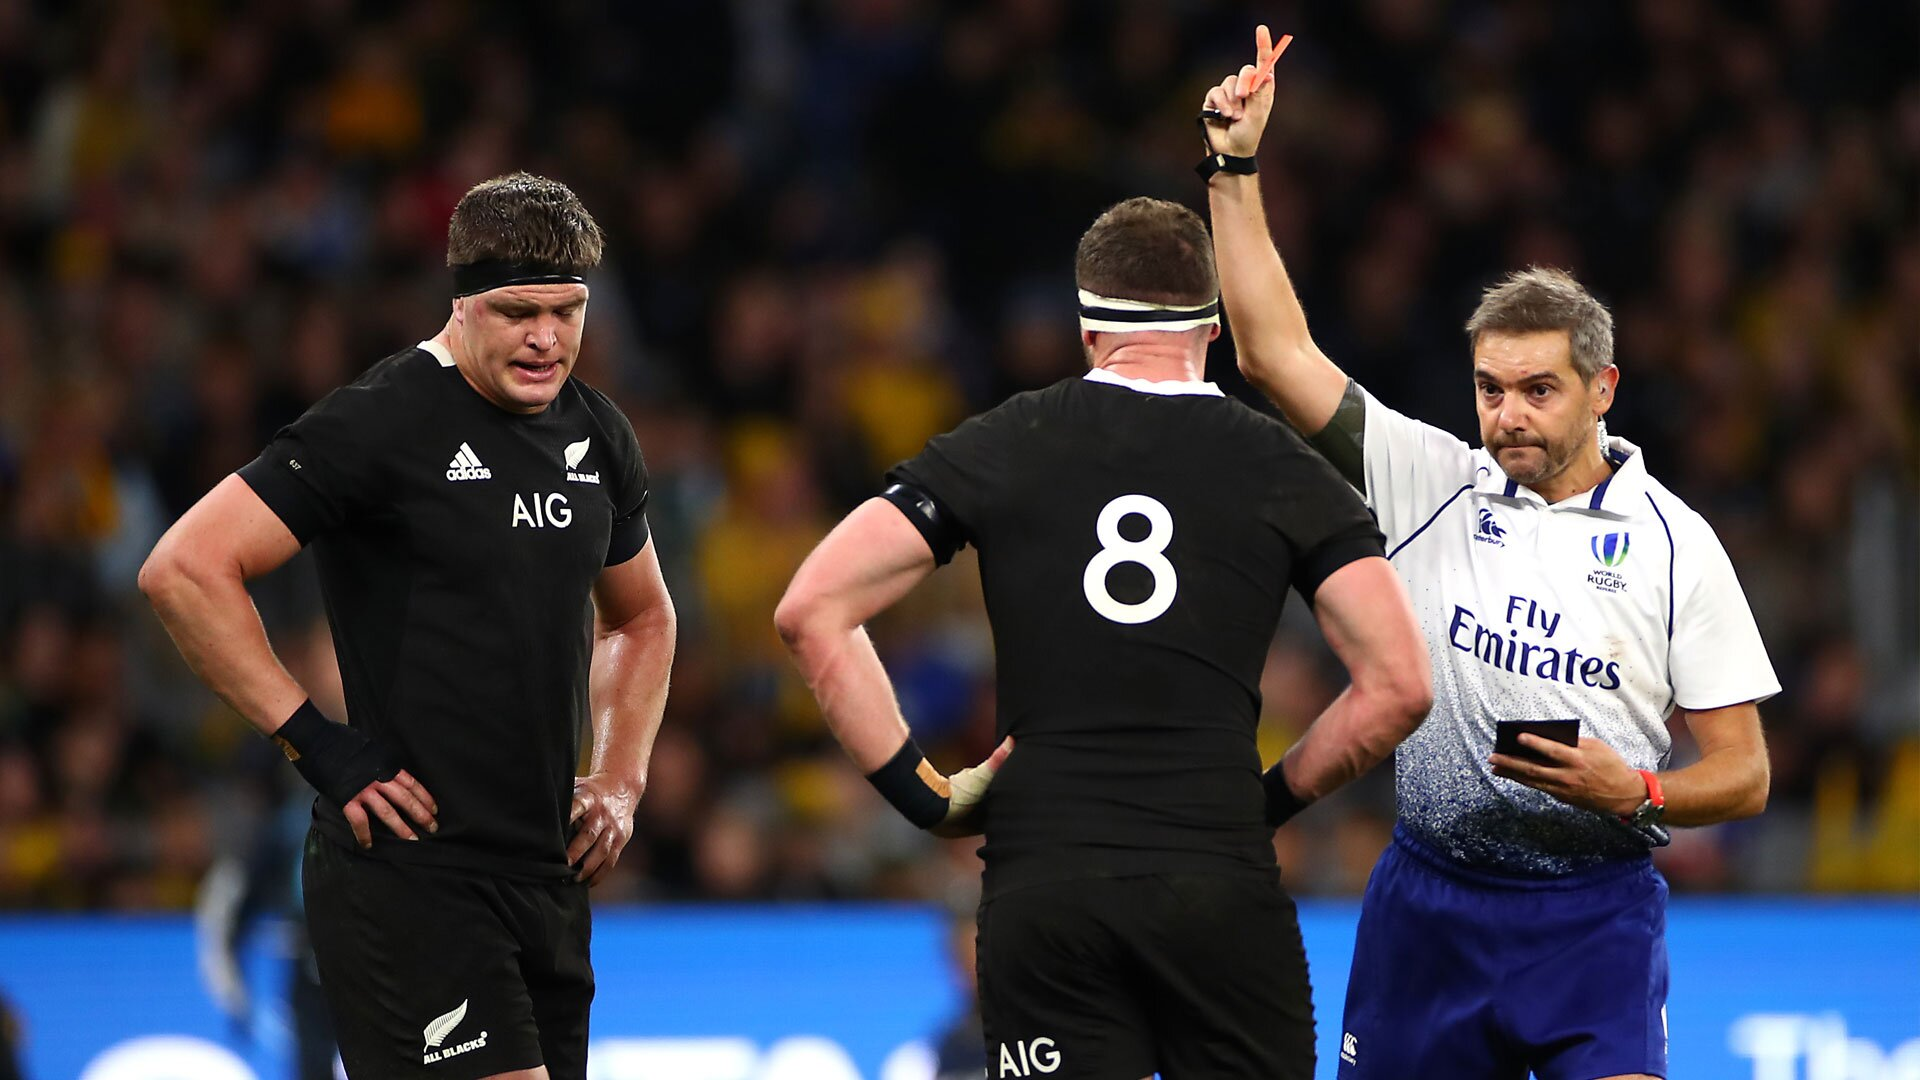 Four home unions kick radical RWC red card plan to touch